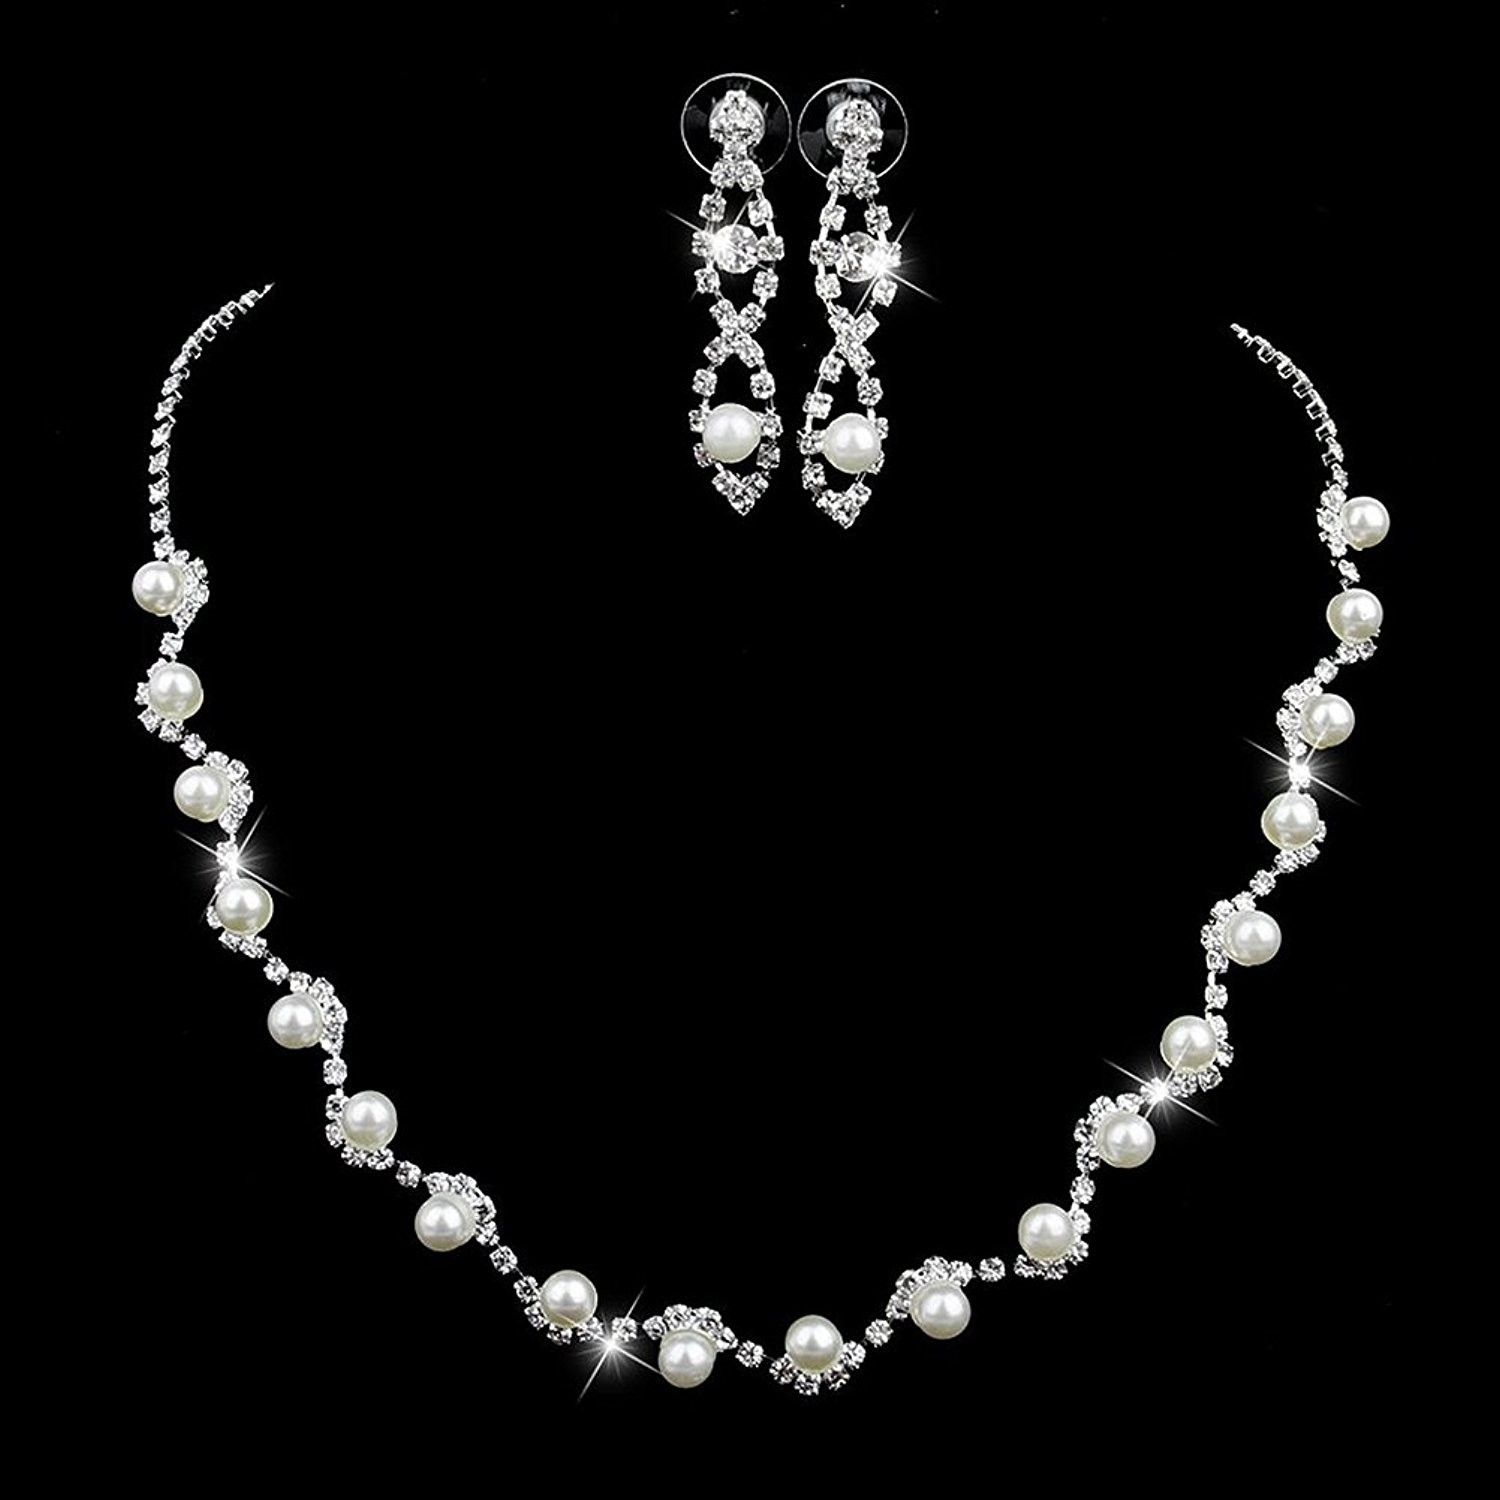 2591425bdd264 Jewelry Sets, Cystal Rhinestone Faux Pearl Necklace Earrings Women ...